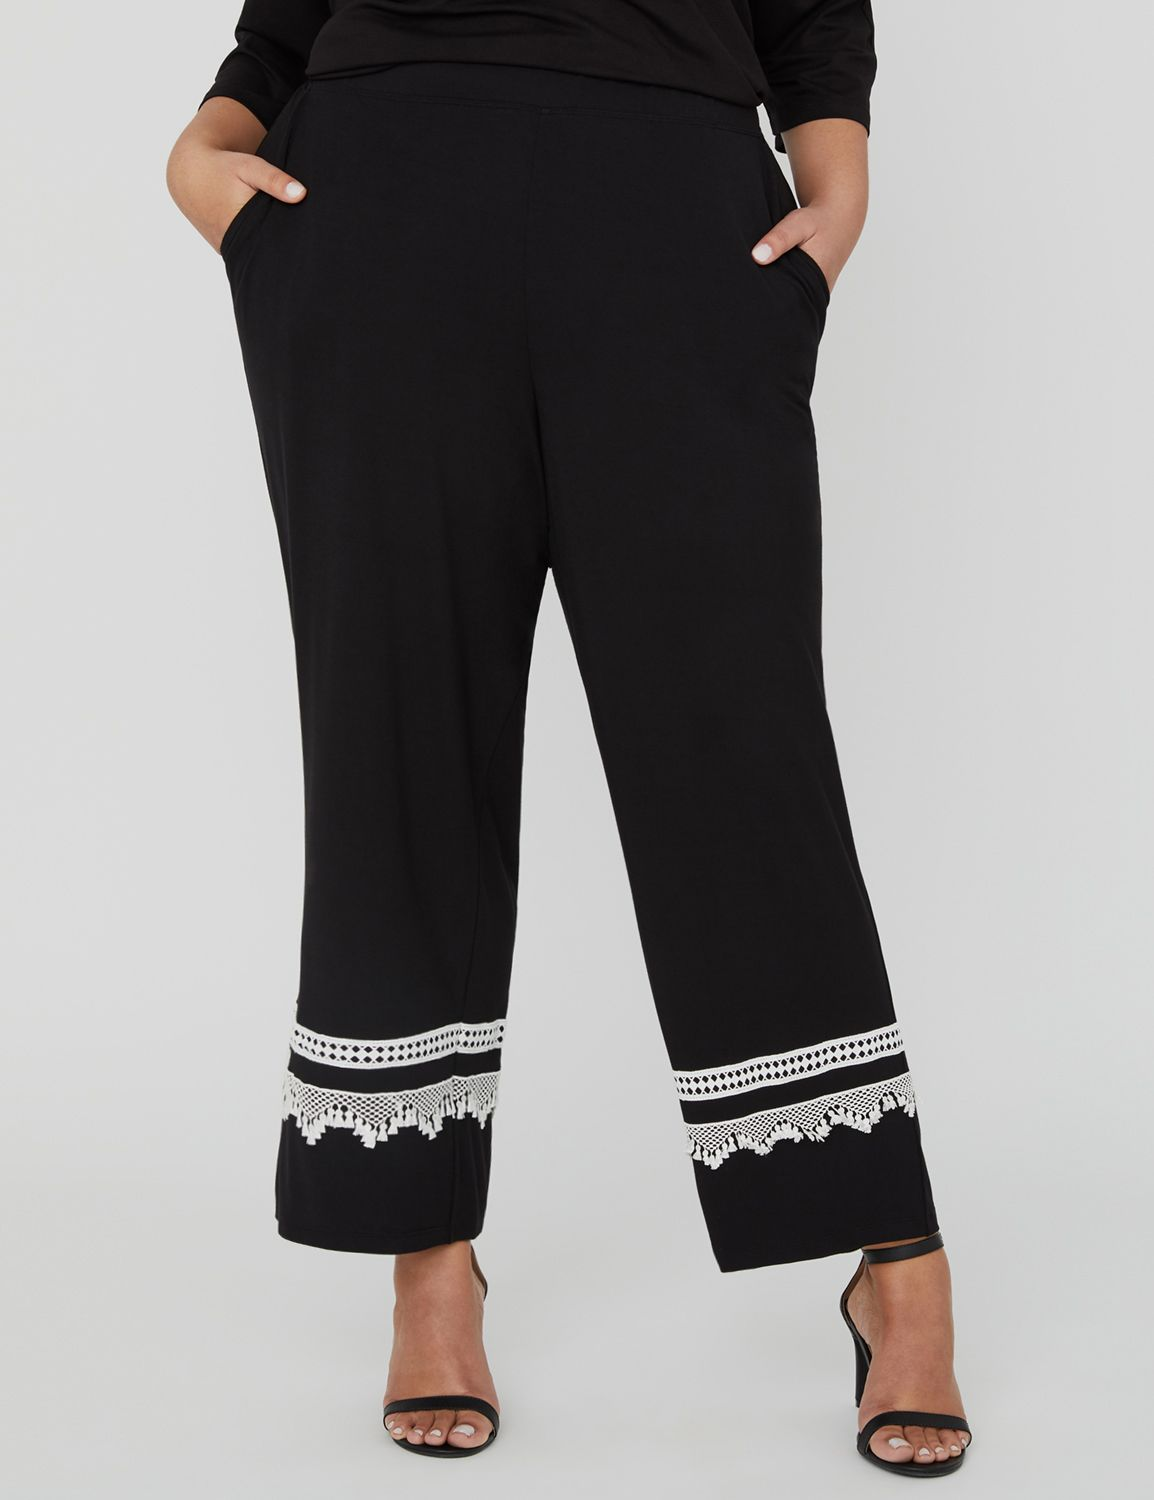 AnyWear Reverie Straight-Leg Crop Pant 1090084 Anywear Rayon Span Straight MP-300105236